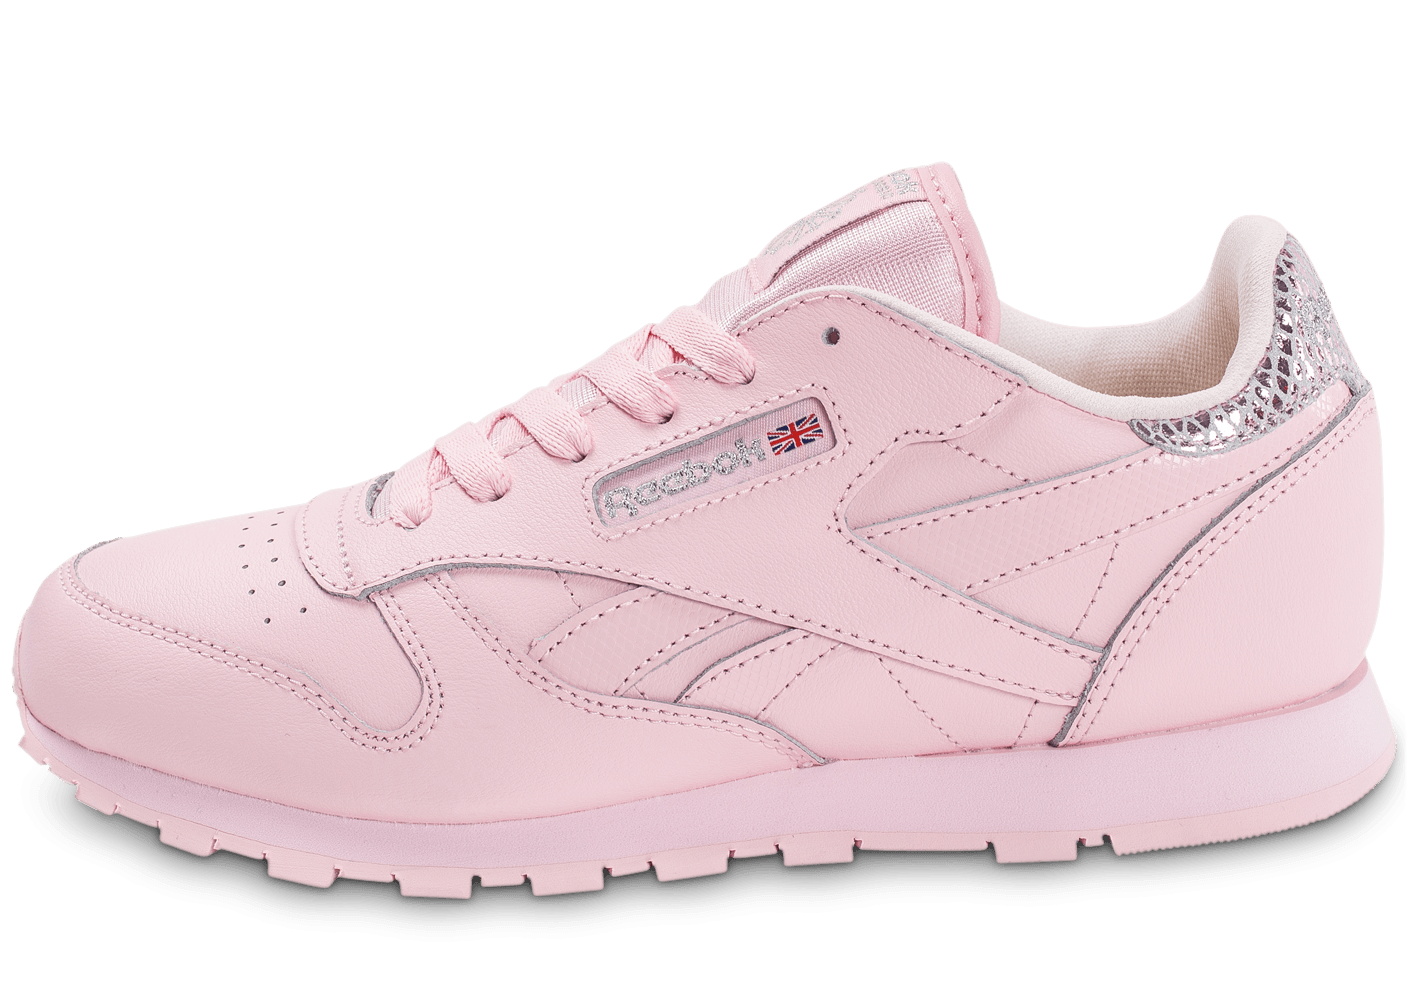 reebok classic leather metallic rose chaussures toutes les baskets sold es chausport. Black Bedroom Furniture Sets. Home Design Ideas